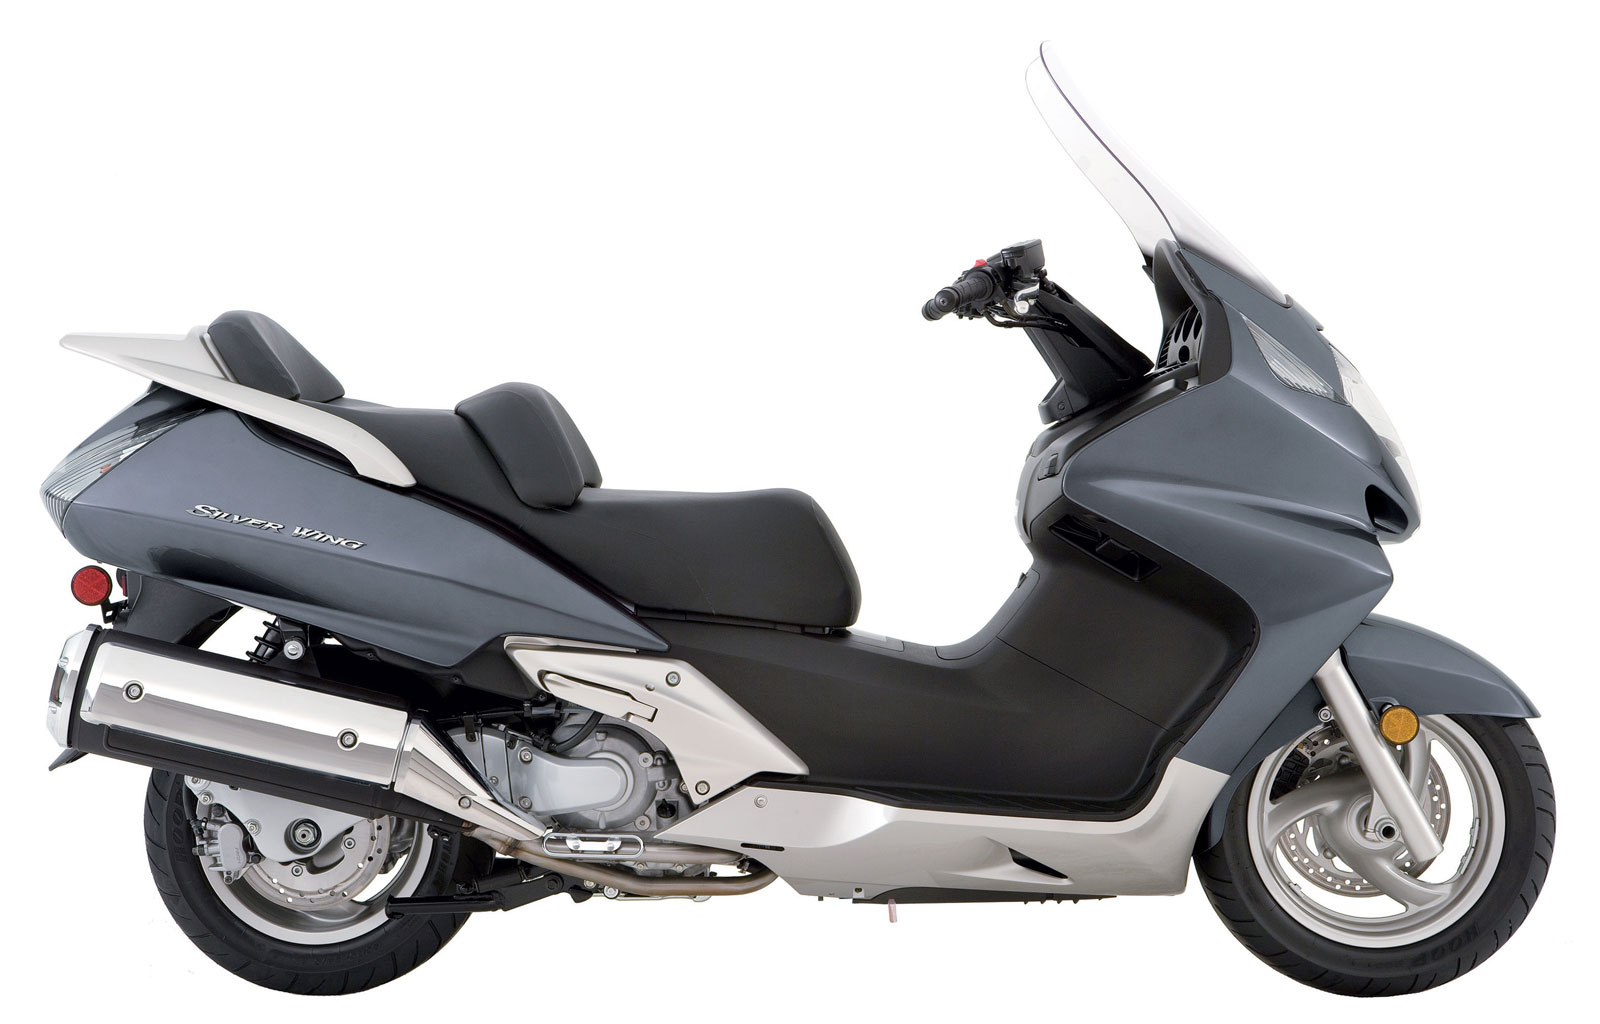 Honda Silver Wing 2007 images #83012